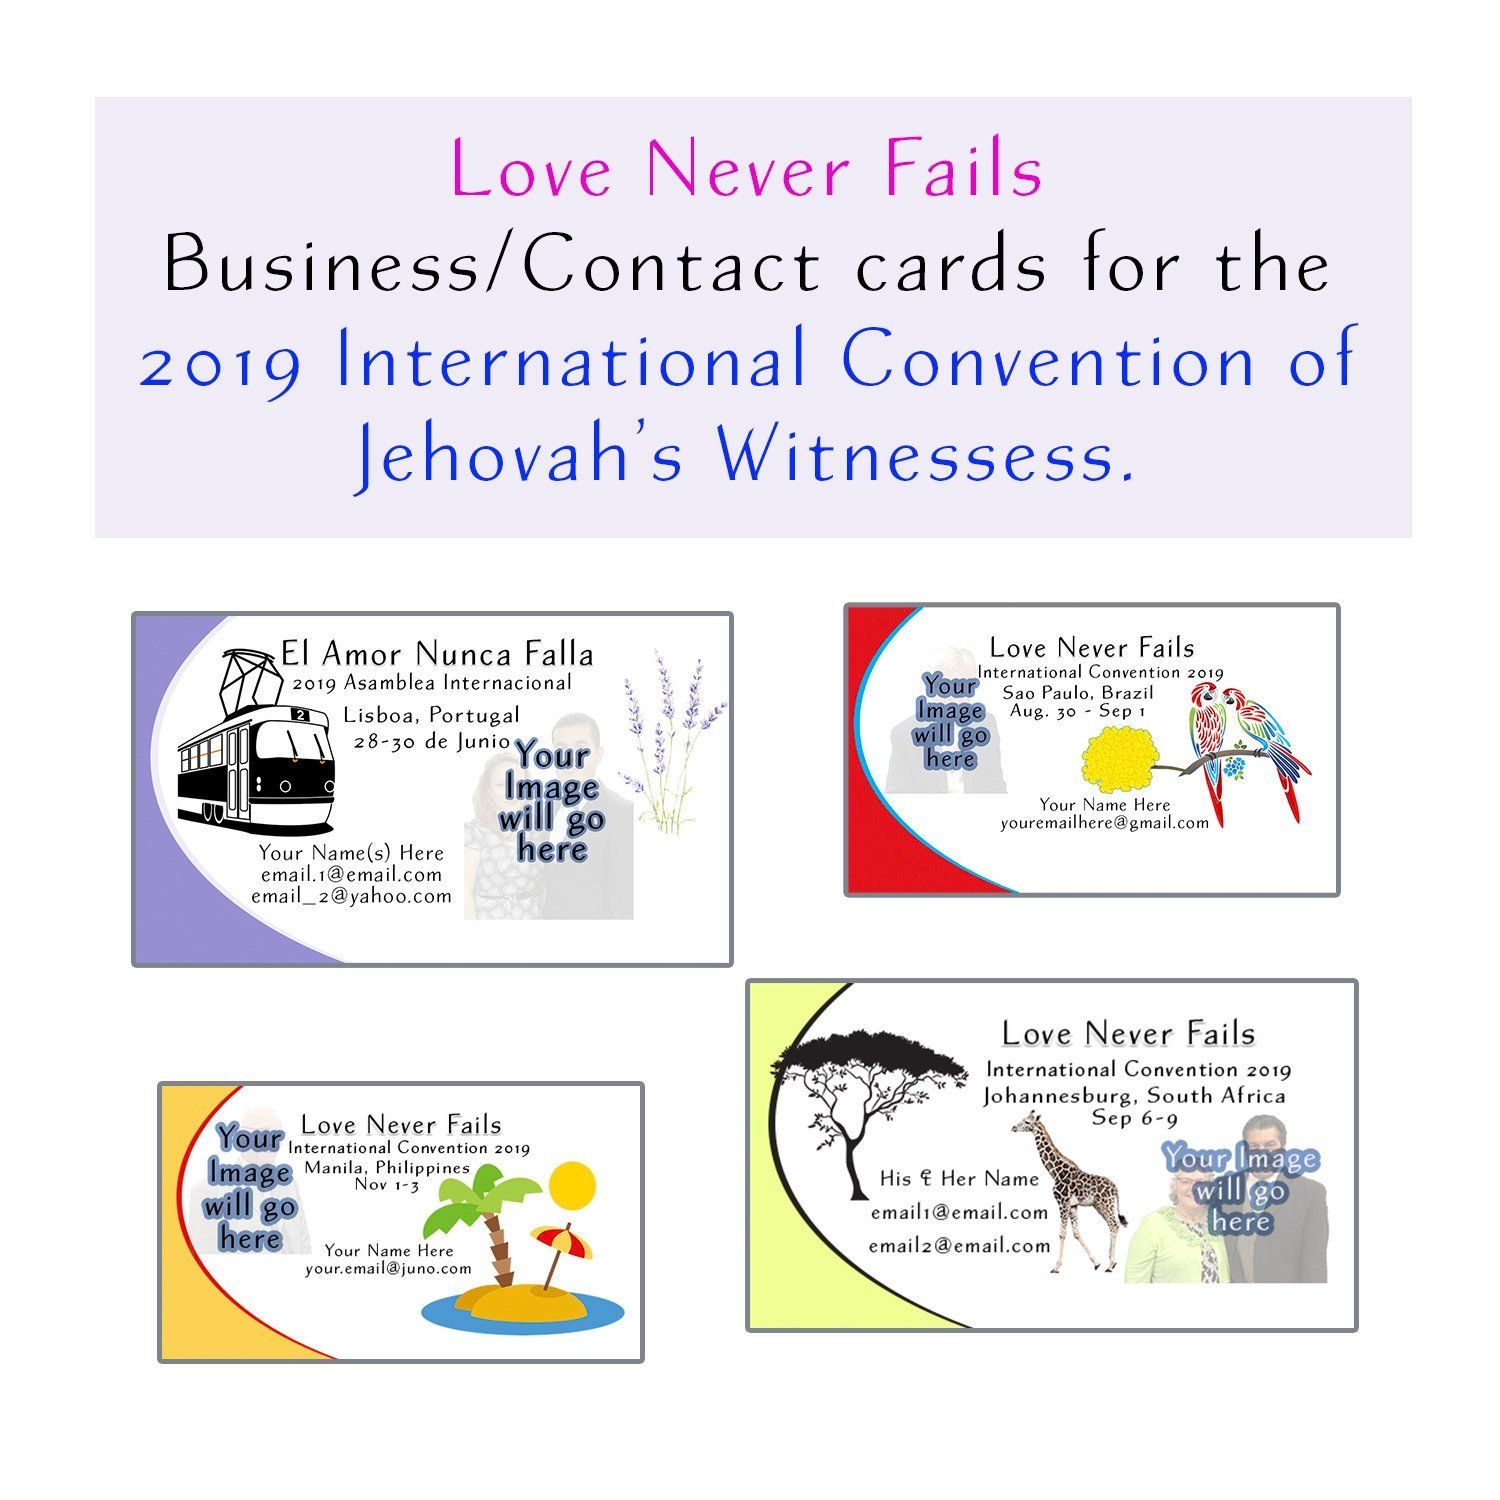 Business/Contact Cards, Love Never Fails, JW 2019 International